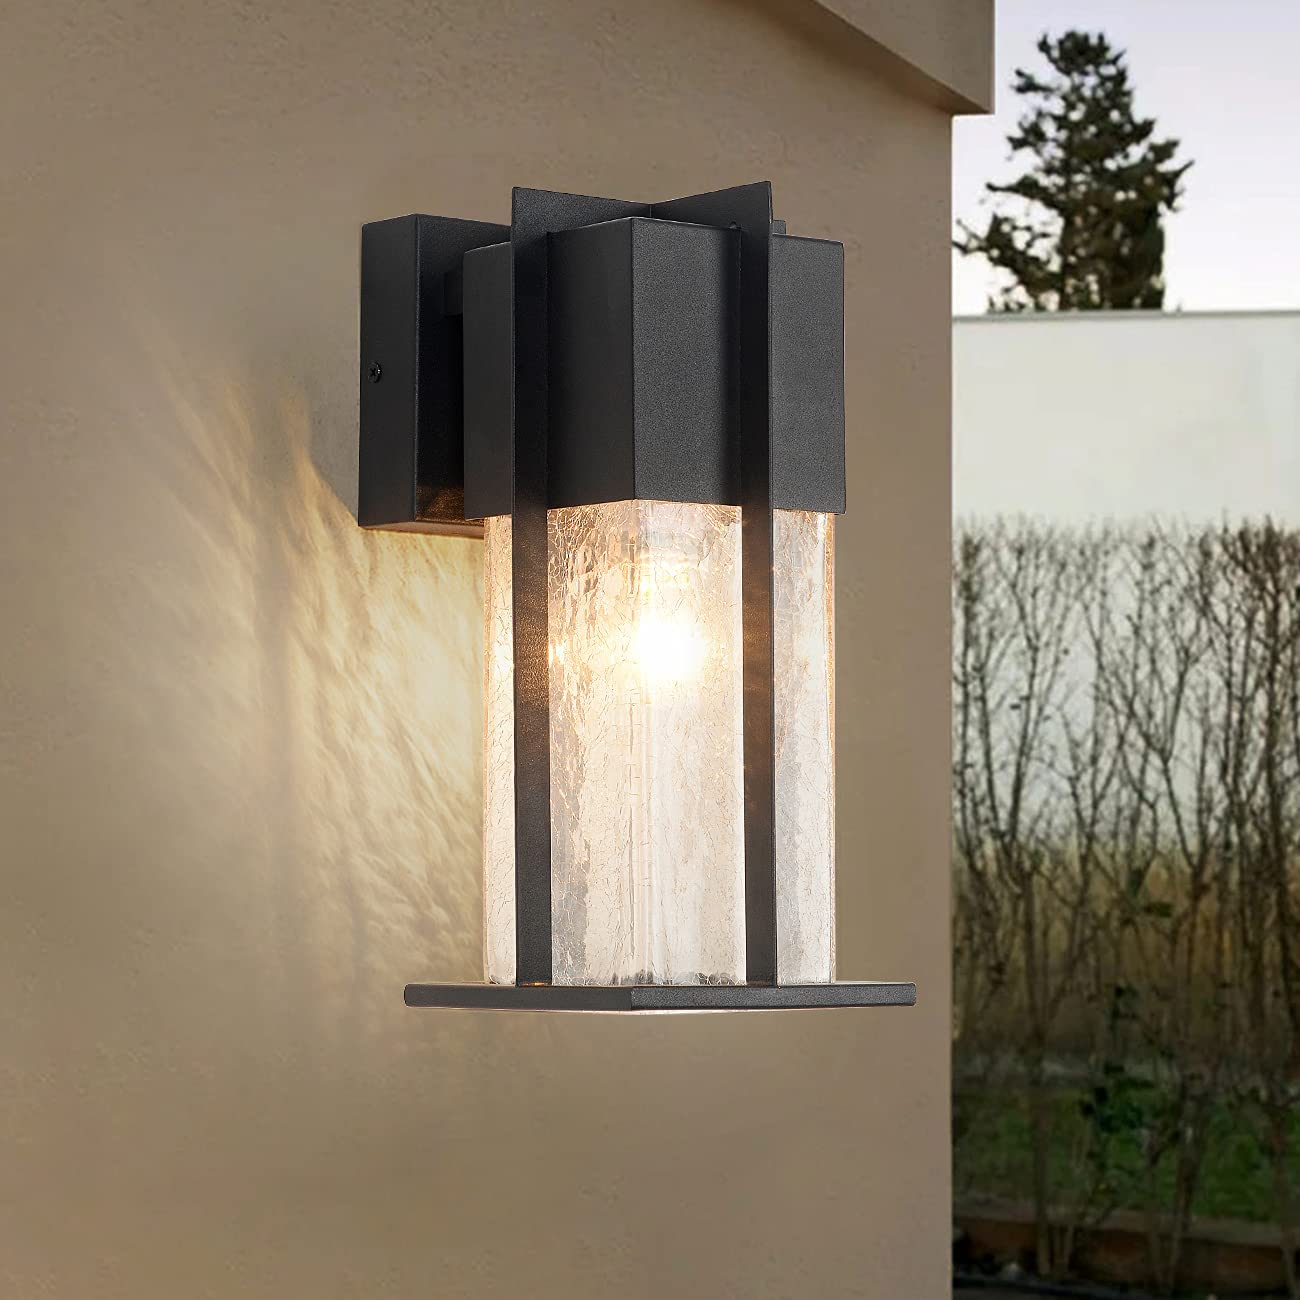 Outdoor Under blast sales Wall 25% OFF Light Fixtures with Shade Glass Modern O Crack-Like